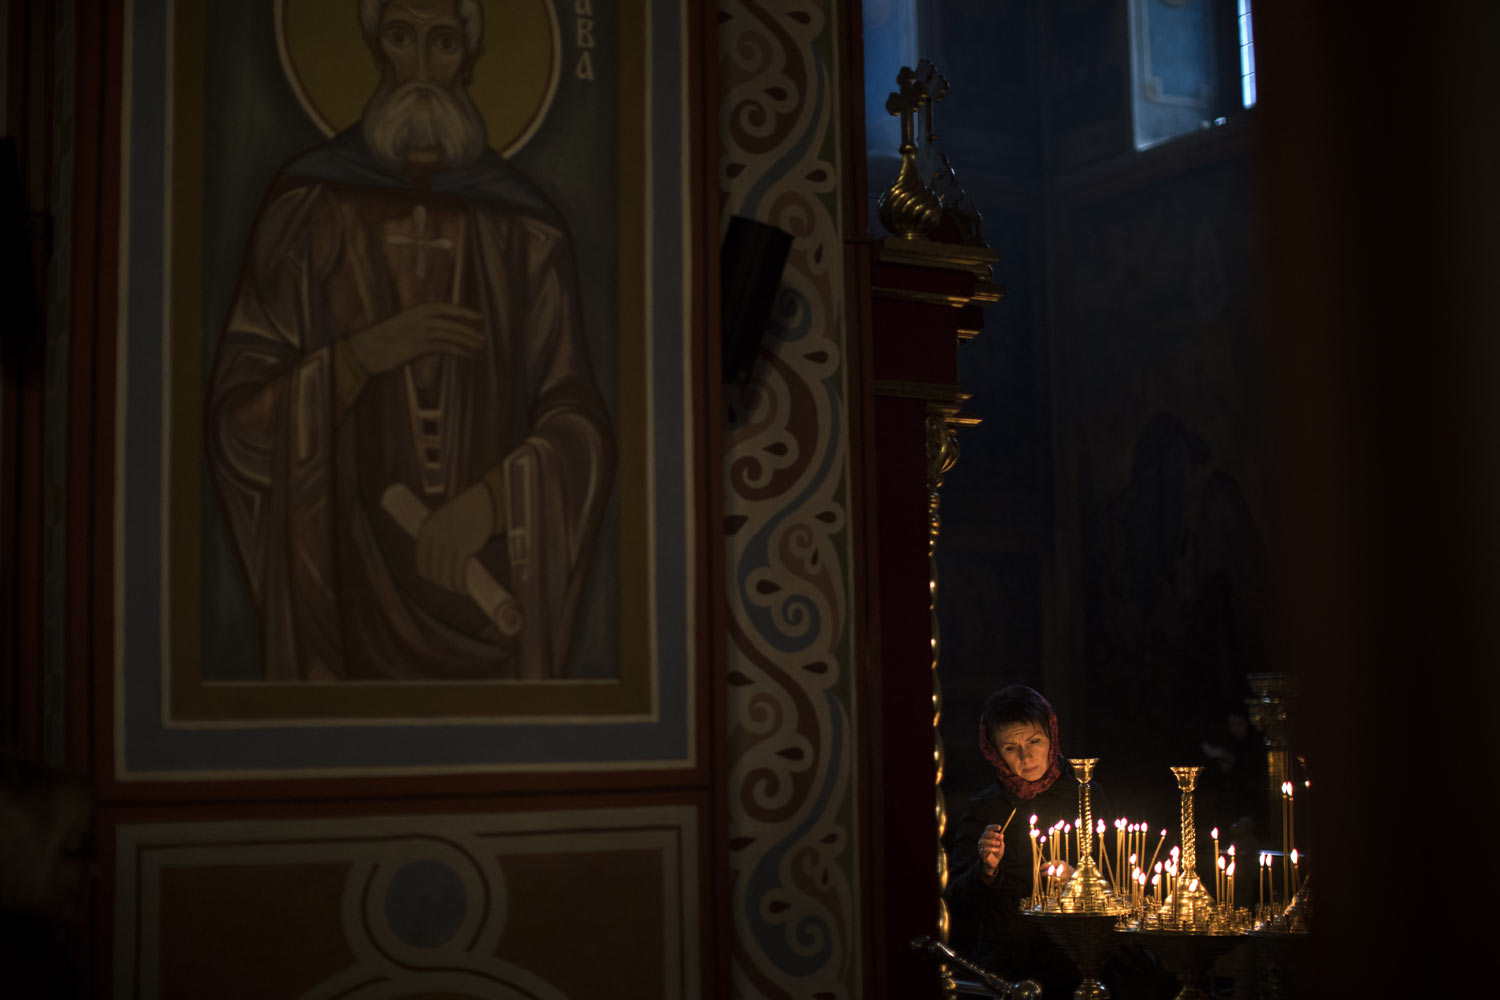 A worshiper lights candles inside Mikhailovsky cathedral in Kiev, Ukraine, on Saturday, March 30, 2019, a day before the first round of presidential elections. (AP Photo/Emilio Morenatti)